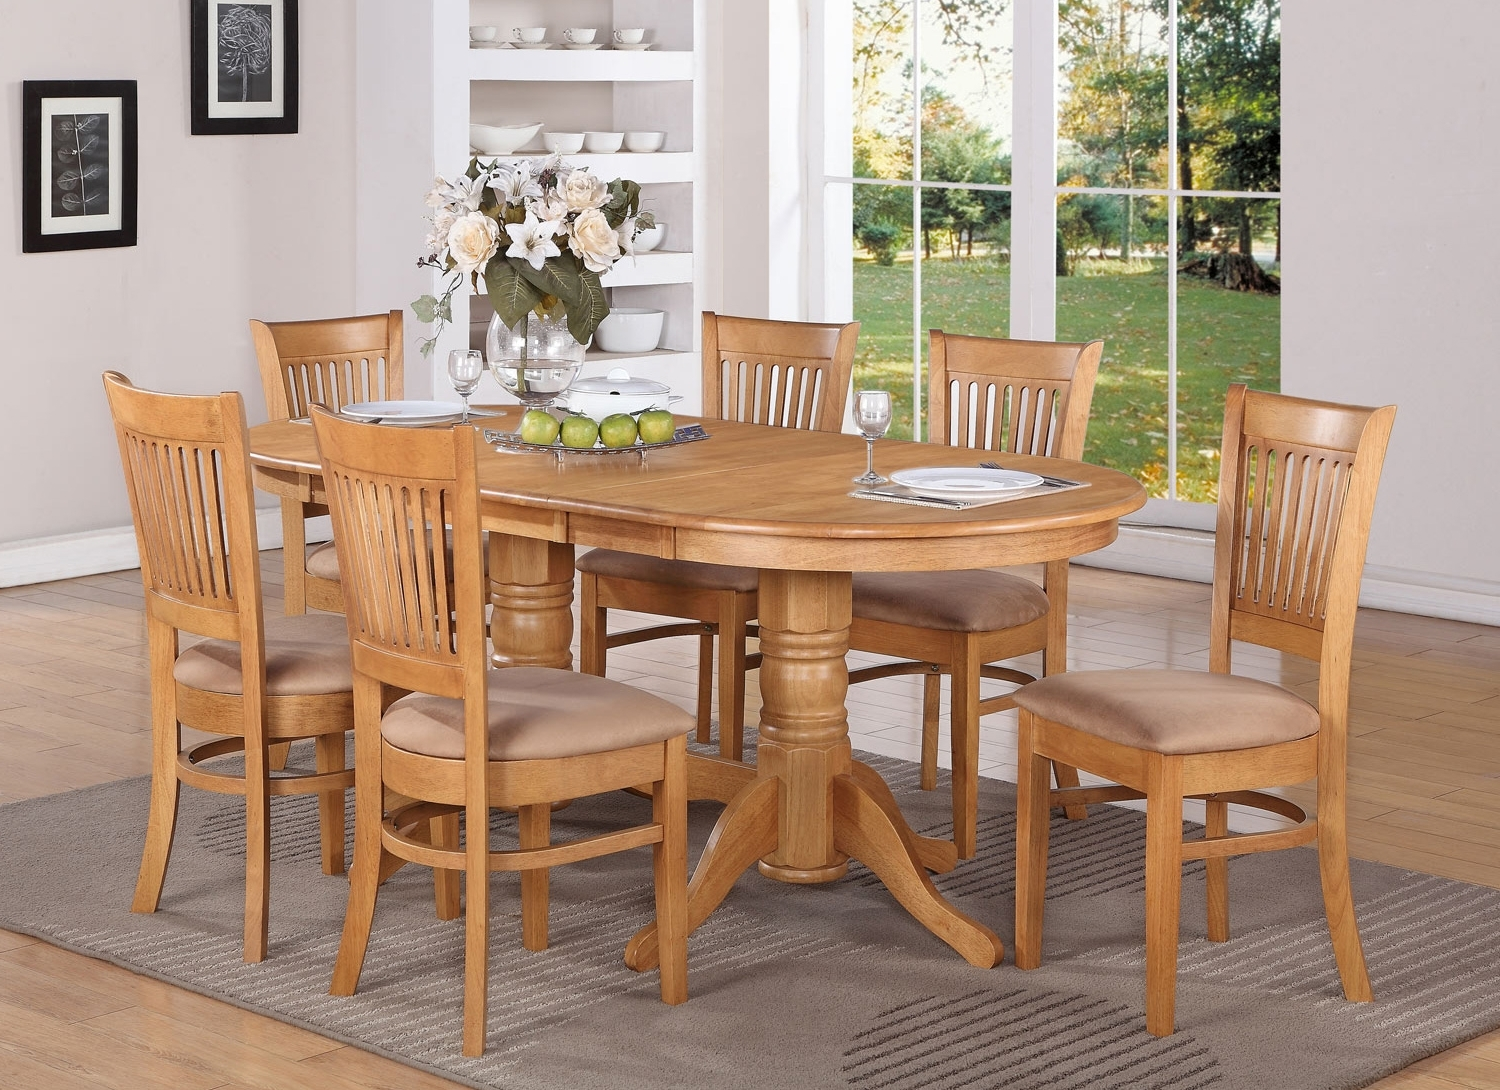 Favorite Oak Dining Tables With 6 Chairs Inside Vancouver 7Pc Oval Dinette Dining Table 6 Microfiber Chairs,oak Finish (View 25 of 25)